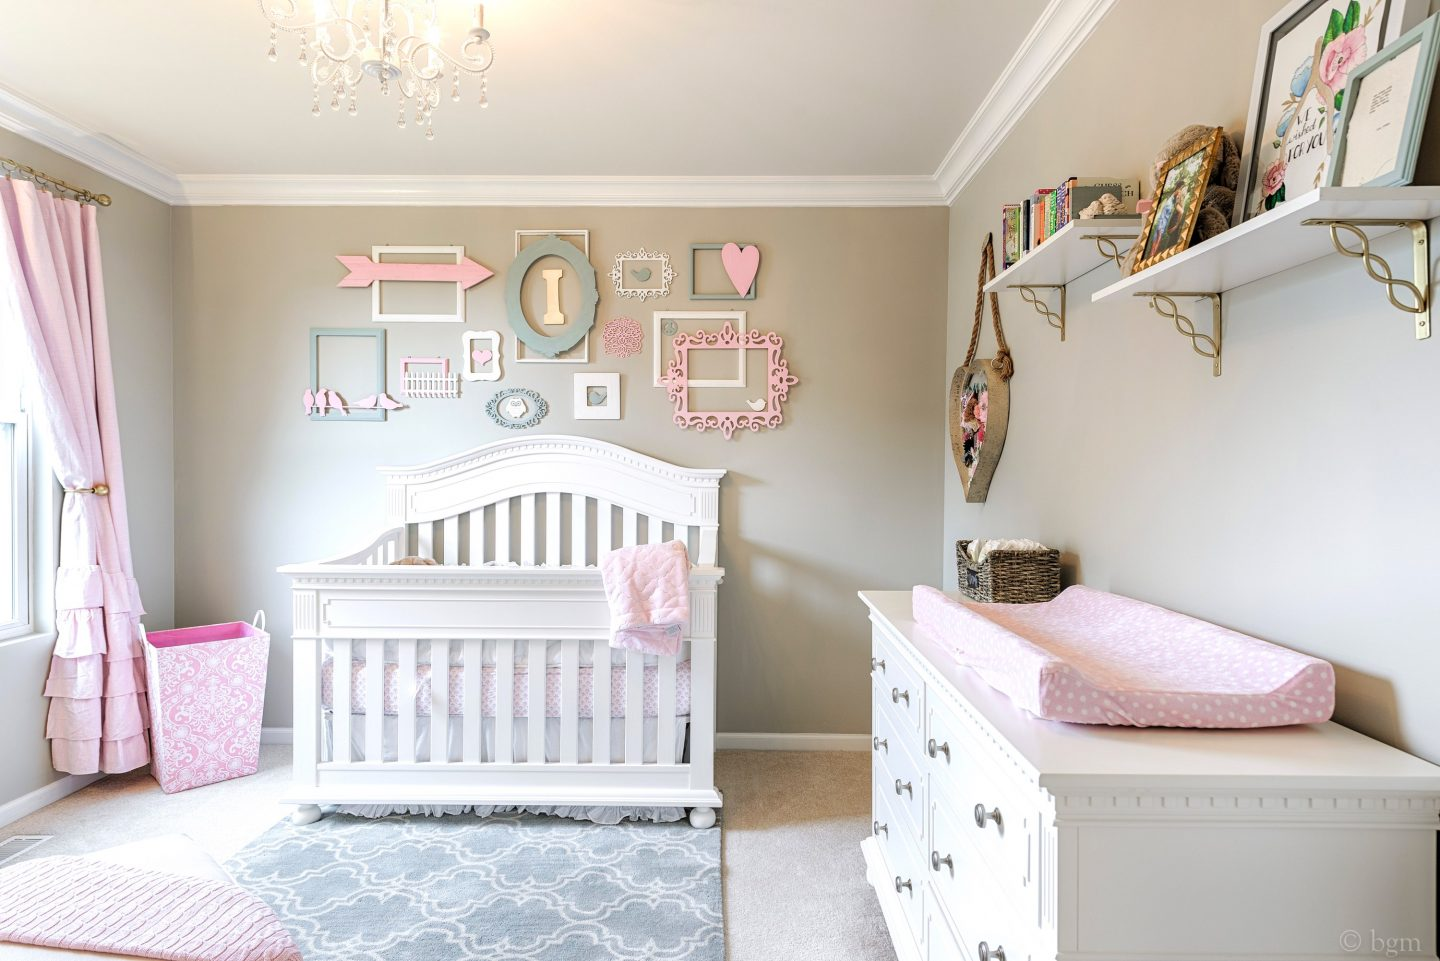 our daughter's nursery